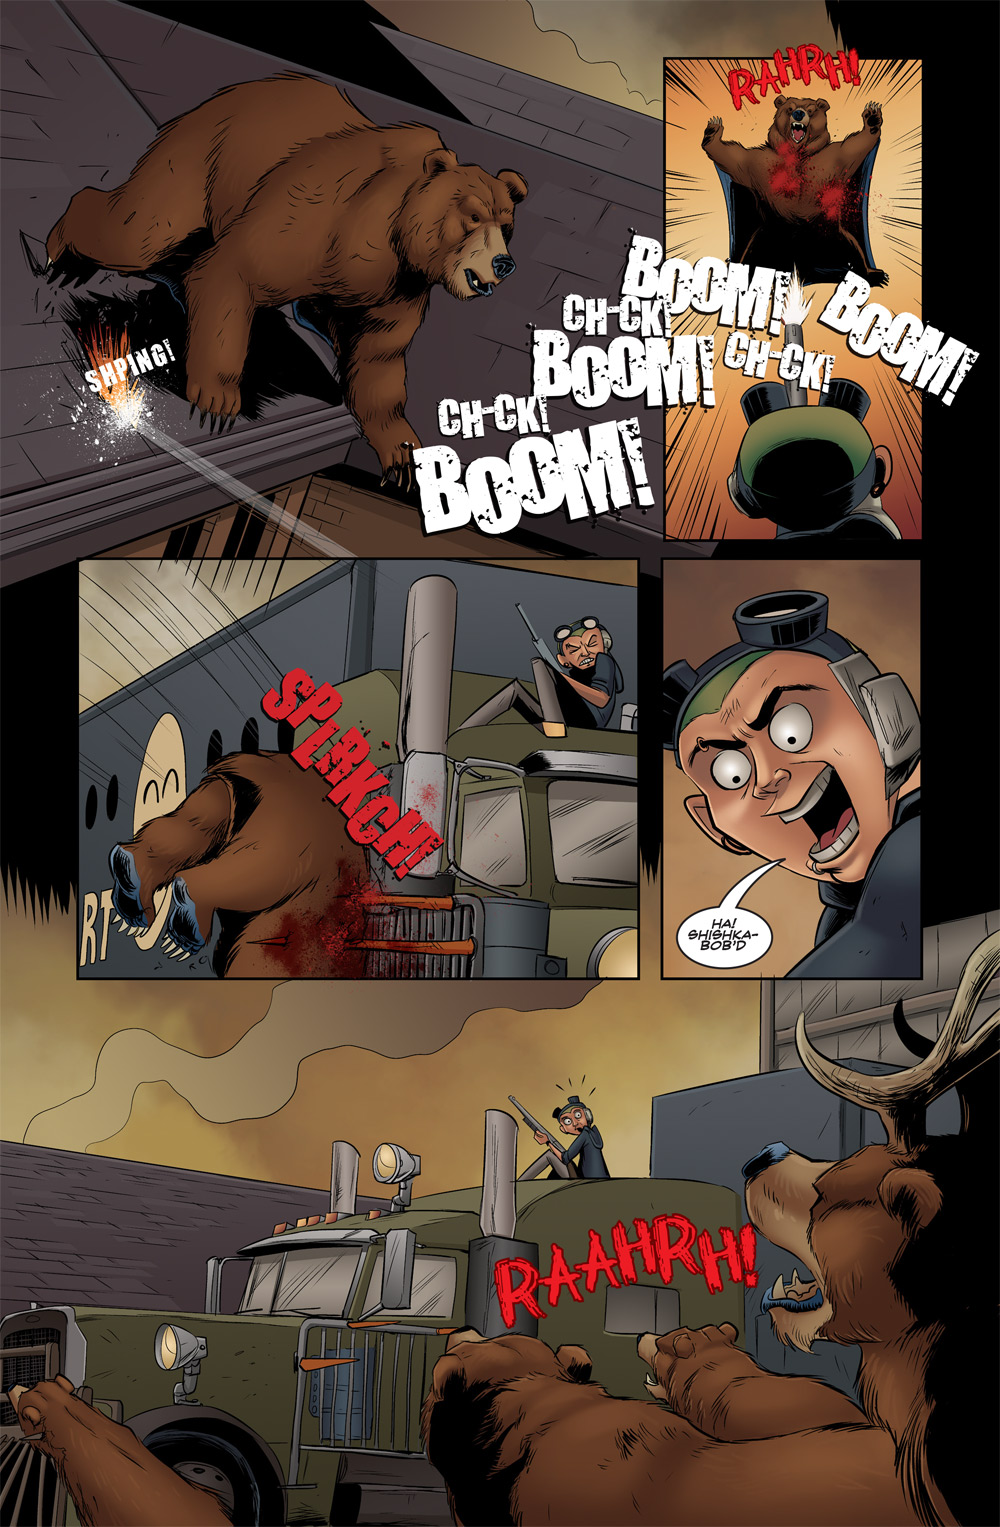 I'd like to think SPLRKCH! could become another household comic sound effect like SNIKT or KRAKADOOM.